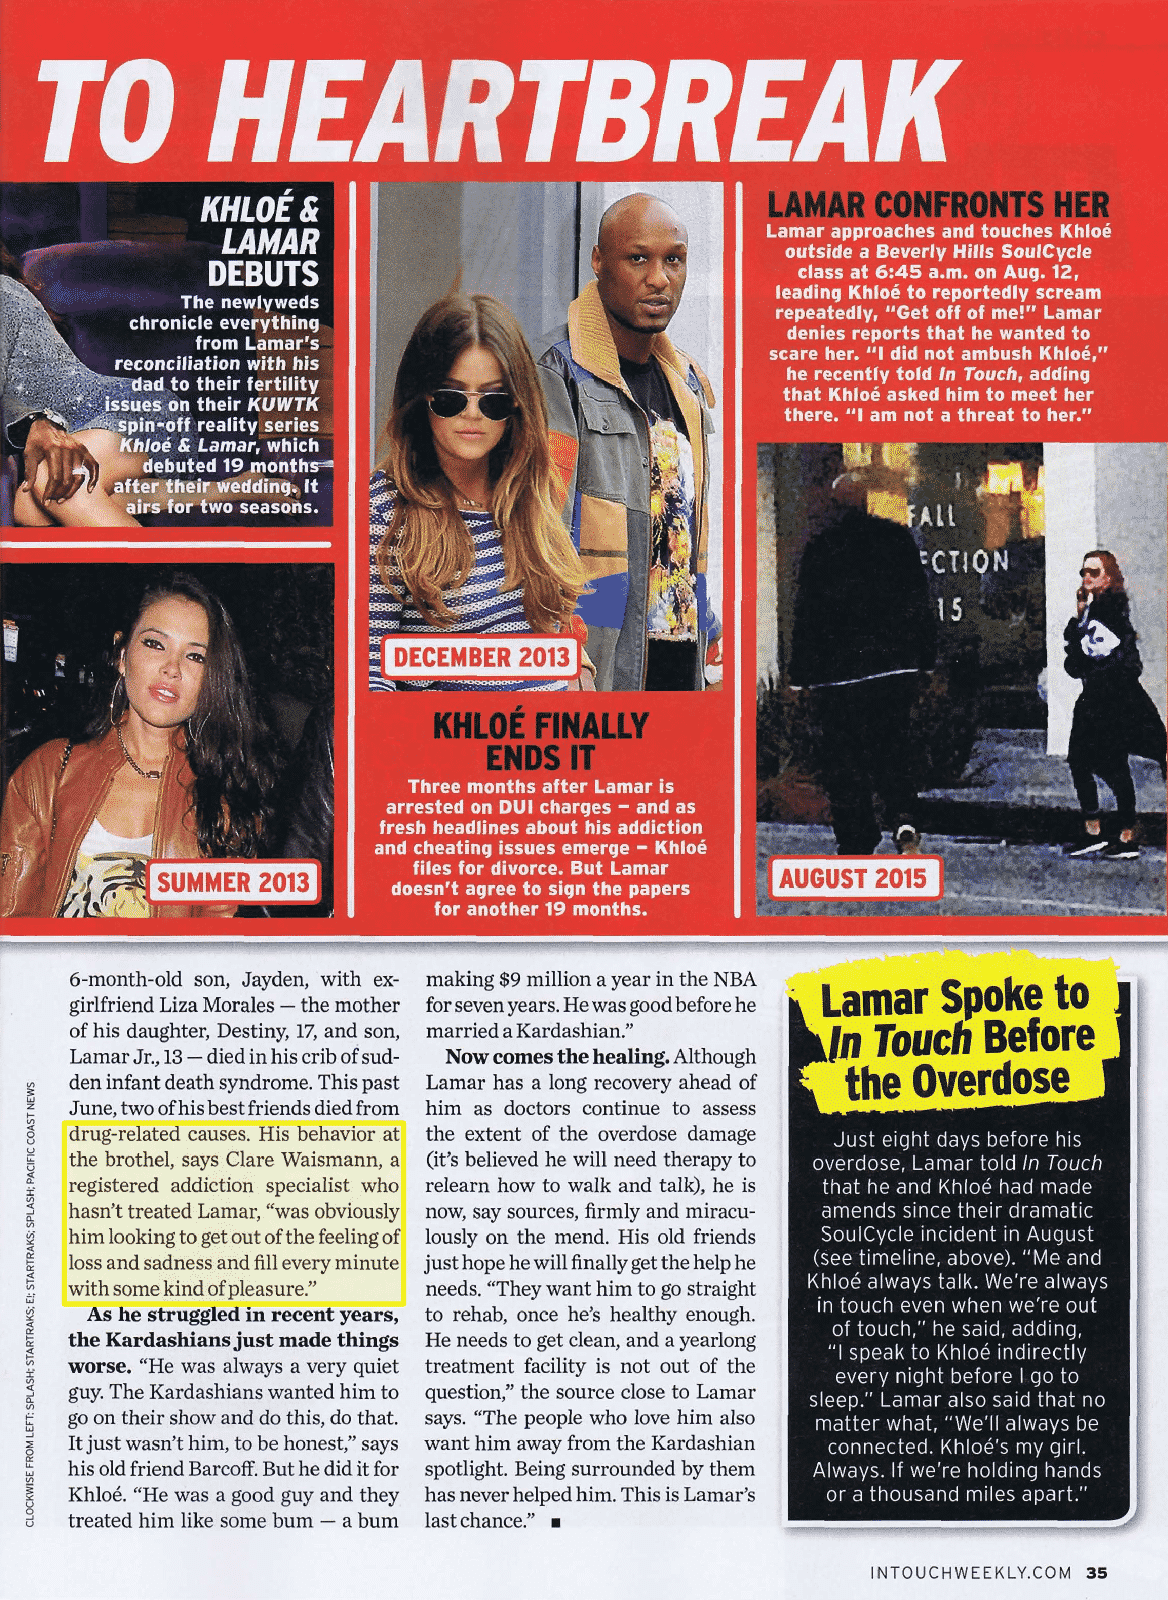 Clare Waismann in In Touch Magazine on the Lamar Odom Overdose